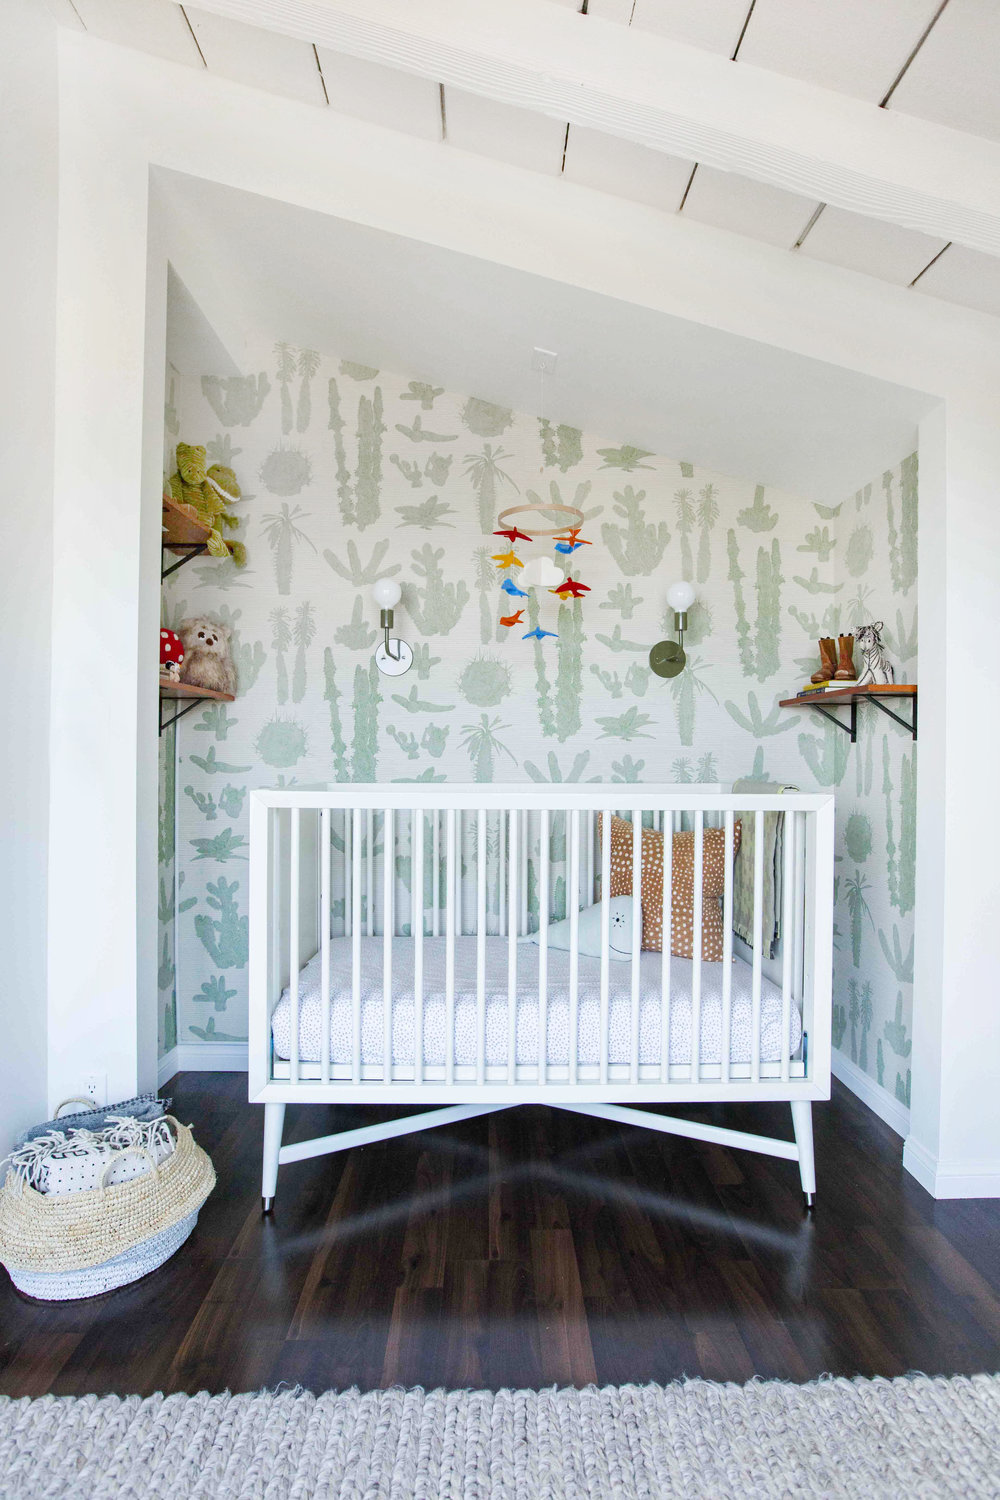 Forget Pink and Blue—Gender-Neutral Is 2017's New Nursery Trend - by GABRIELLE SAVOIE